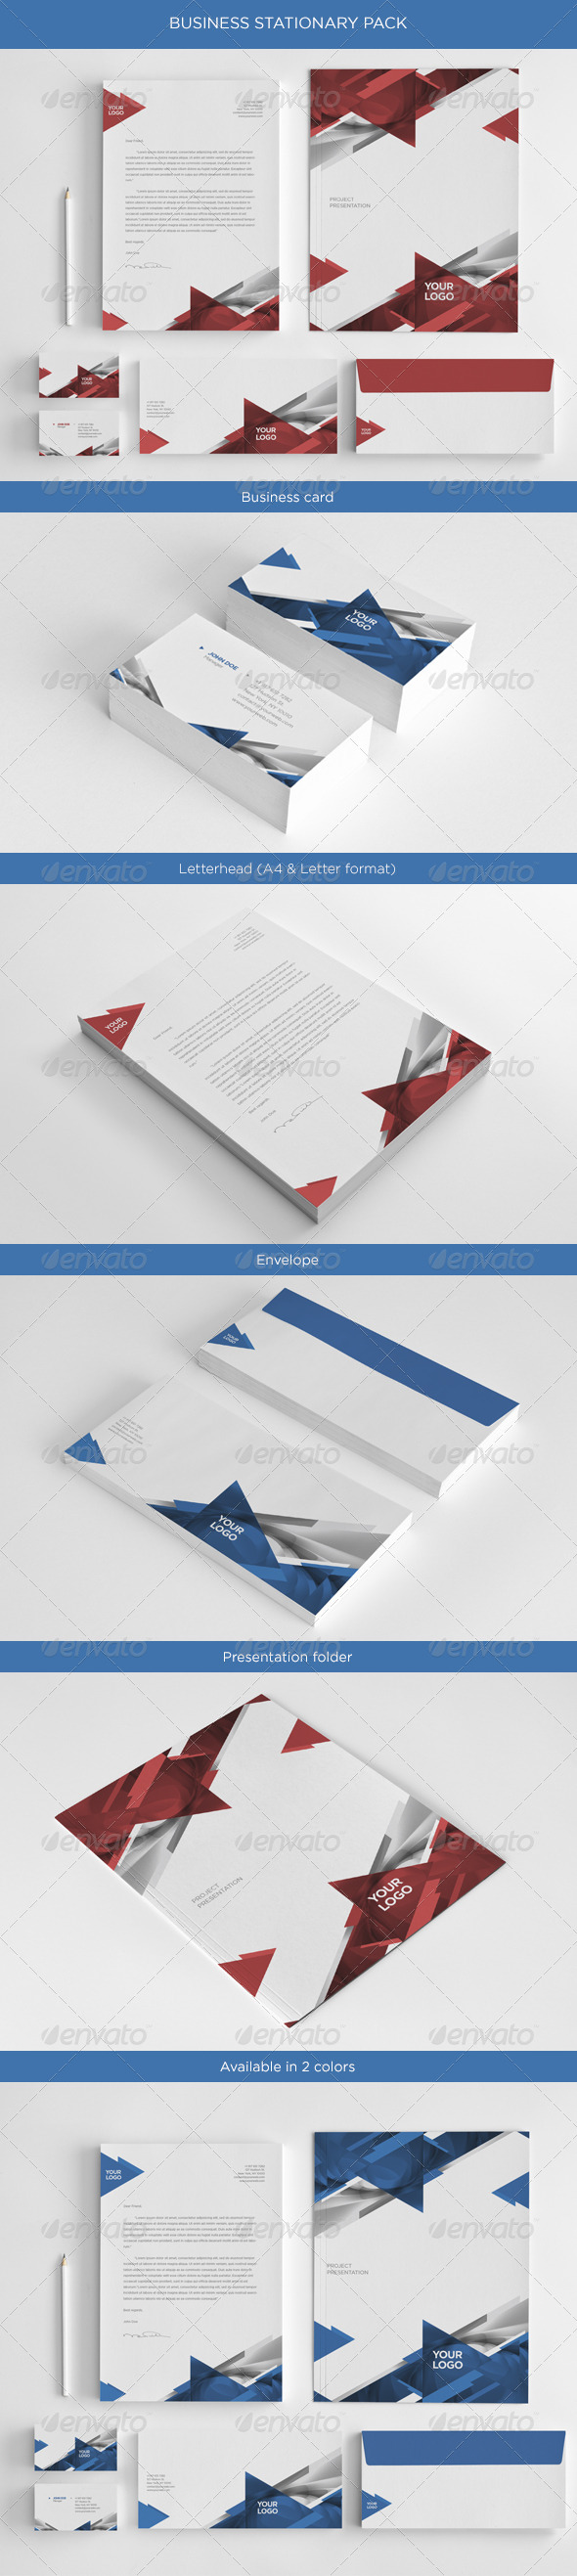 GraphicRiver Business Stationary Pack 4706850